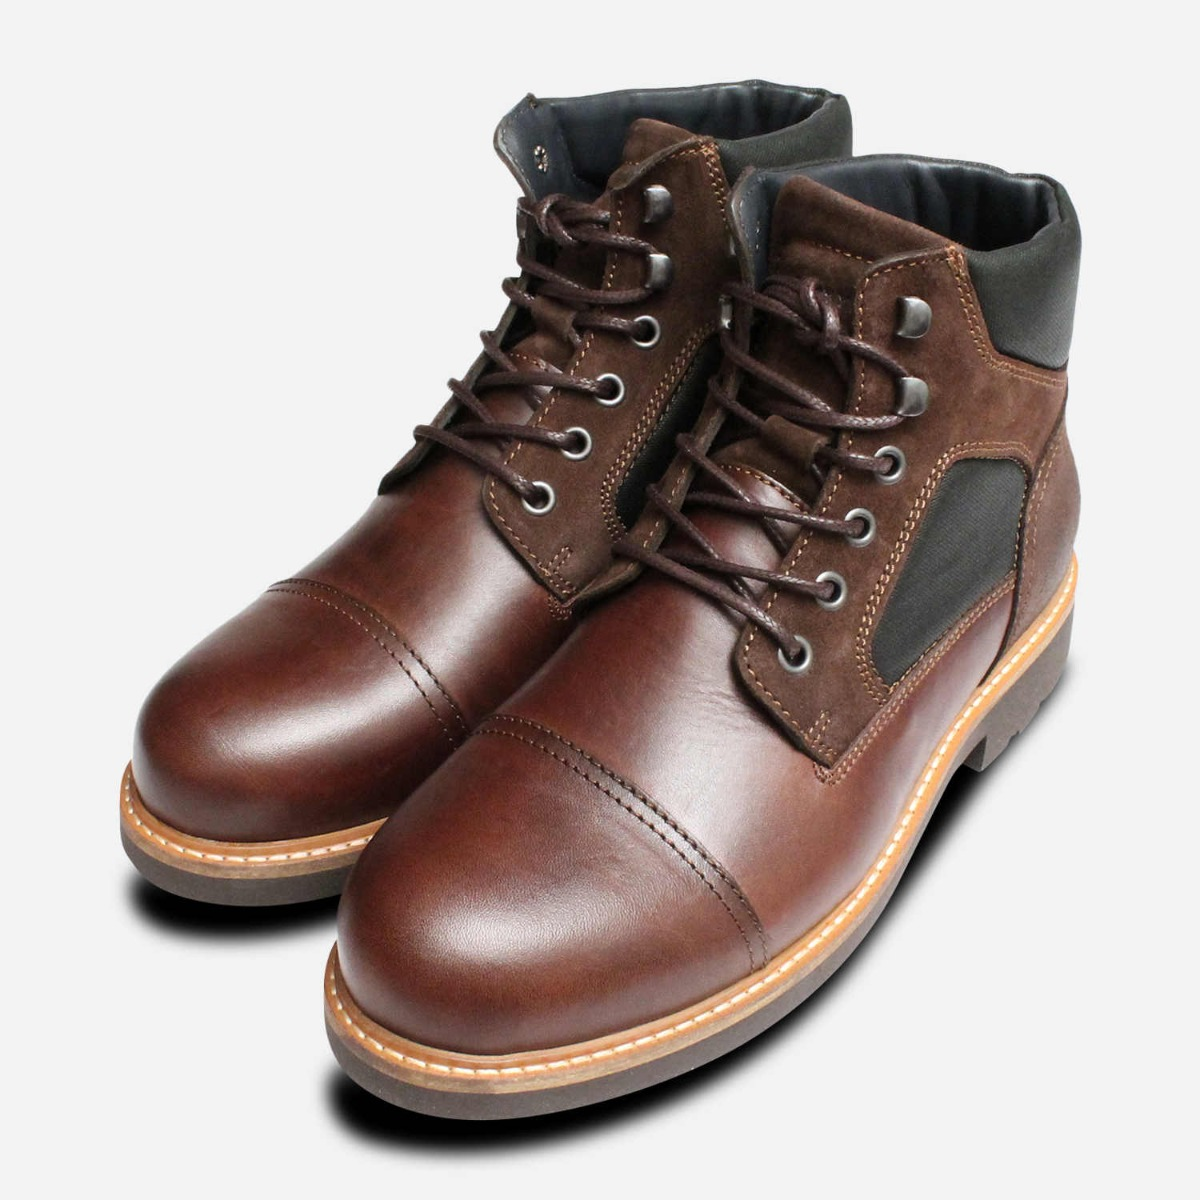 3cf4a767844bd Details about Tommy Hilfiger Coffee Brown Leather Urban Trekking Boot